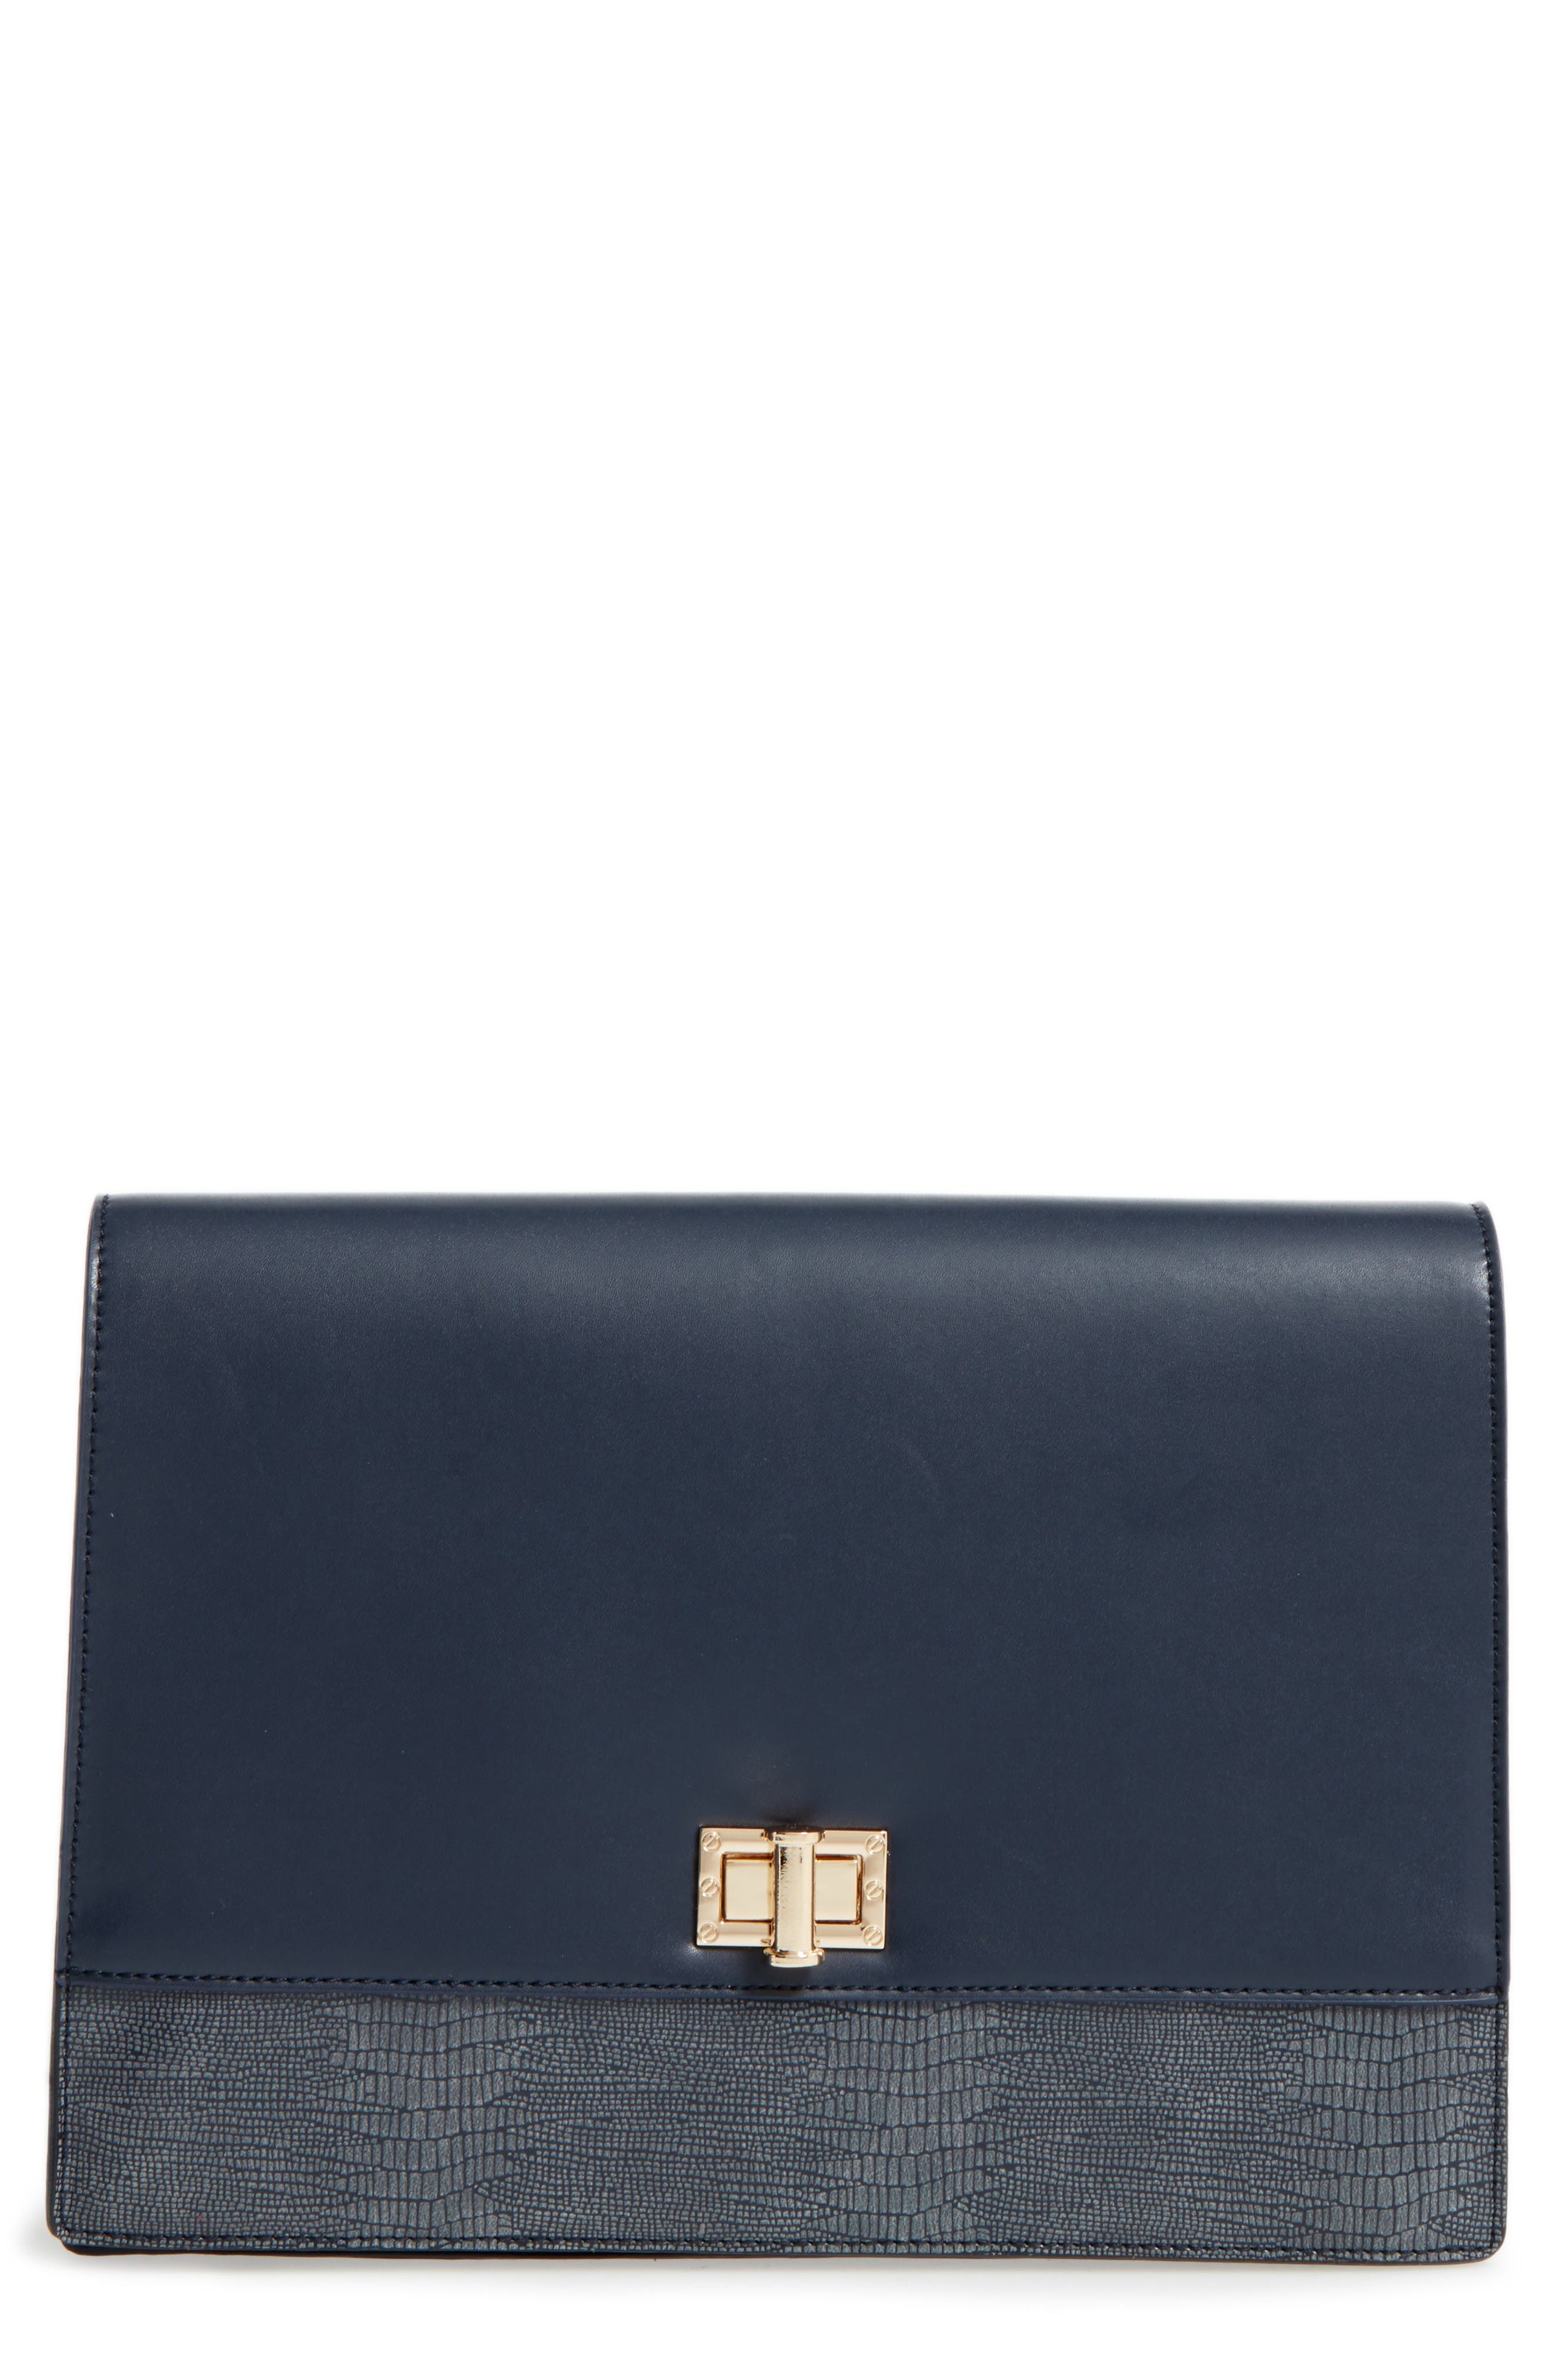 Kaitlyn Faux Leather Clutch,                         Main,                         color, Navy